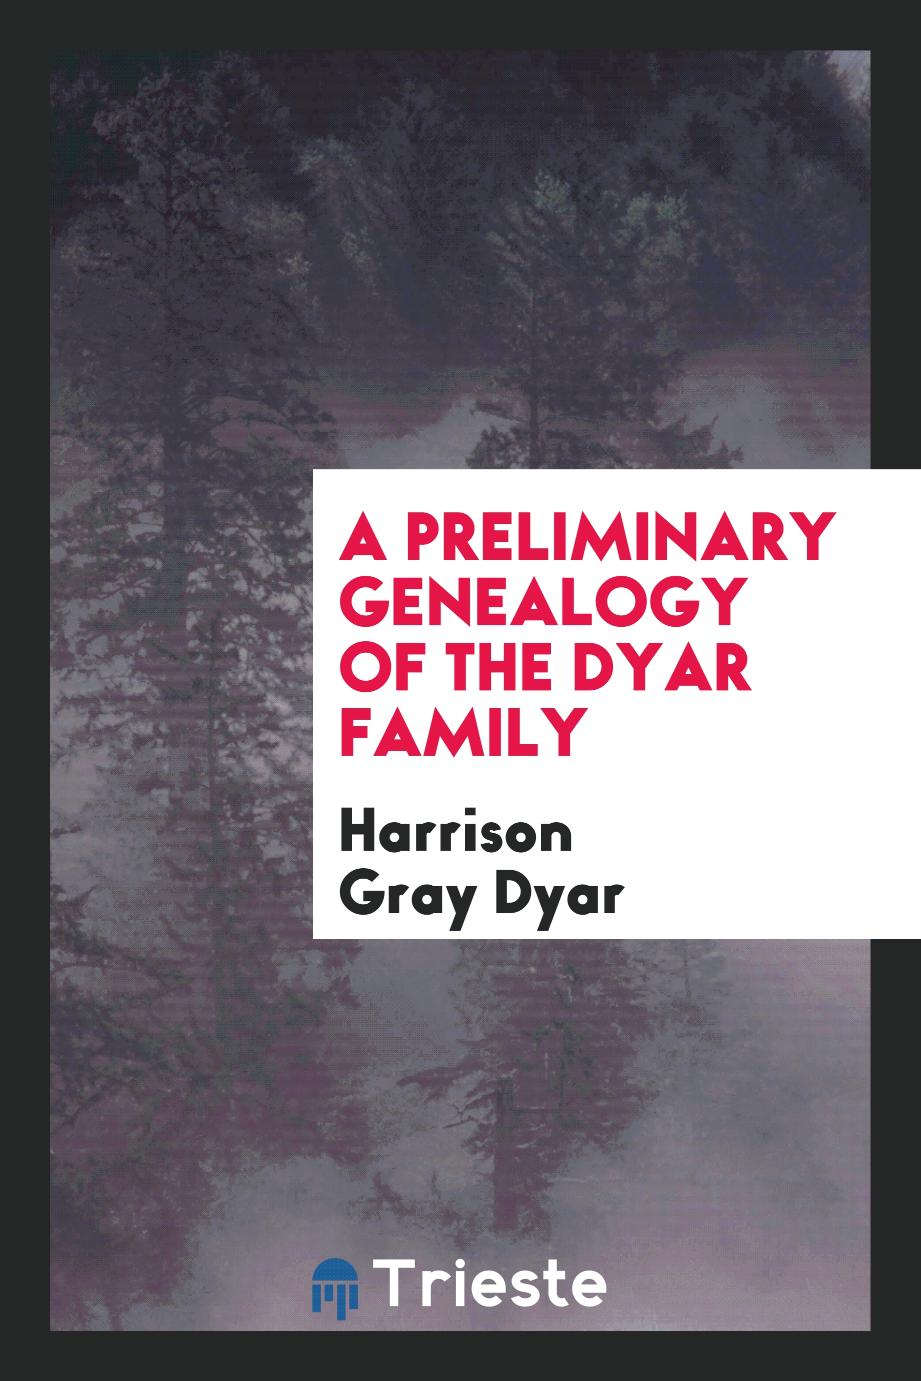 A Preliminary Genealogy of the Dyar Family